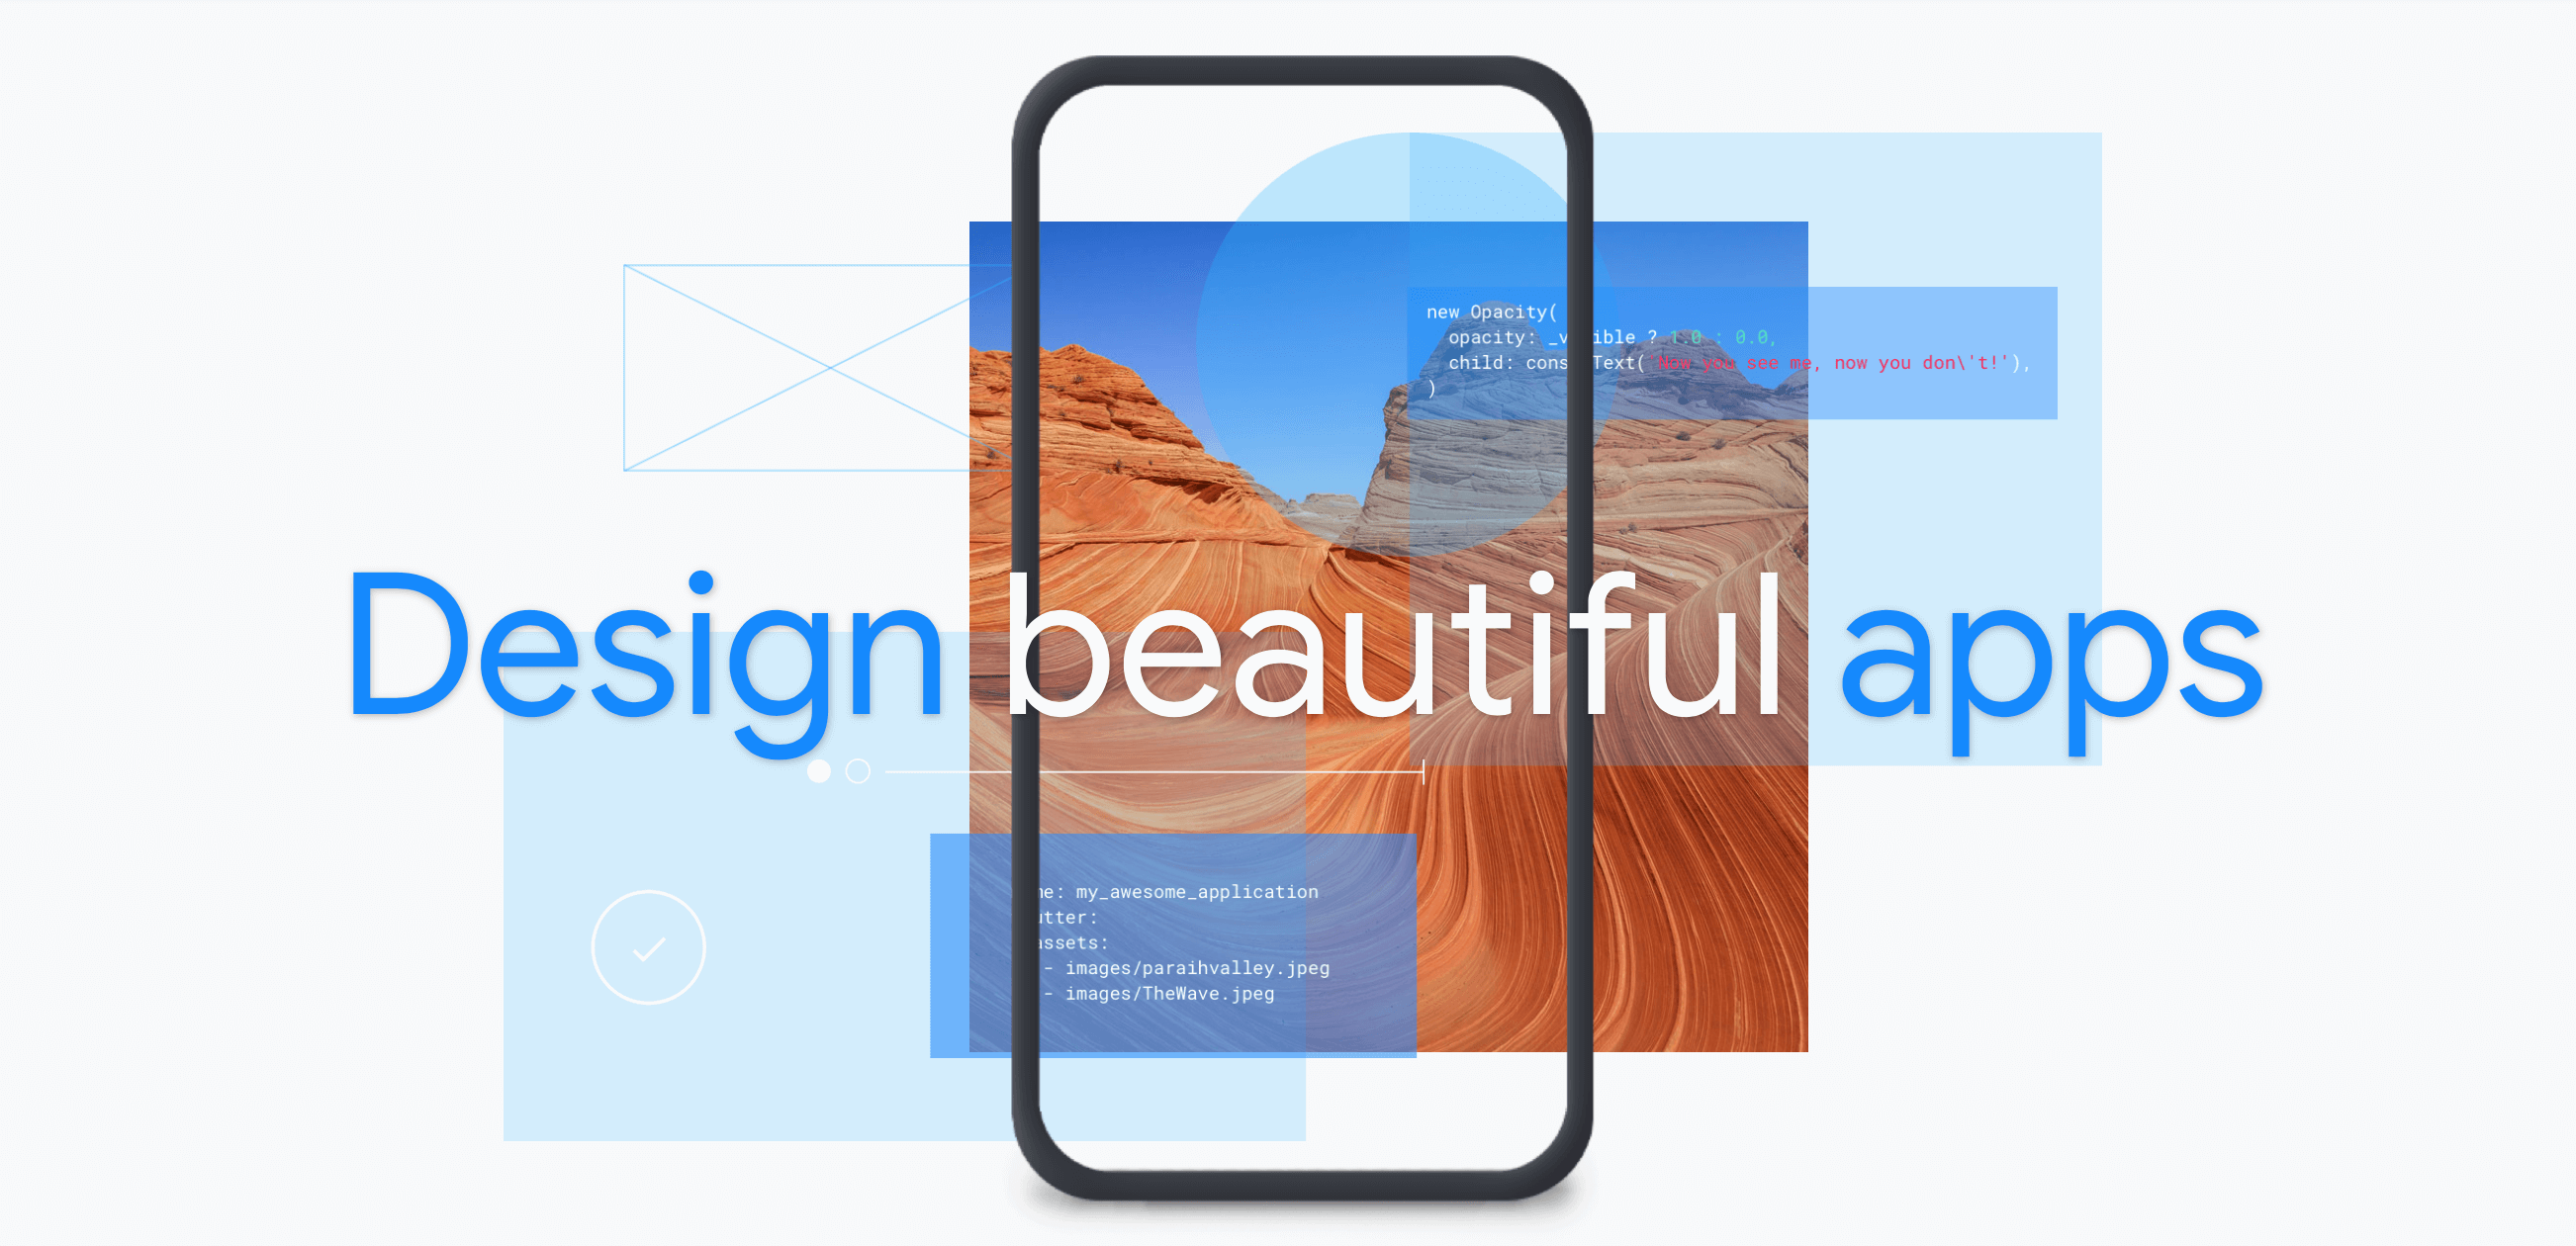 With Flutter you can Design beautiful apps